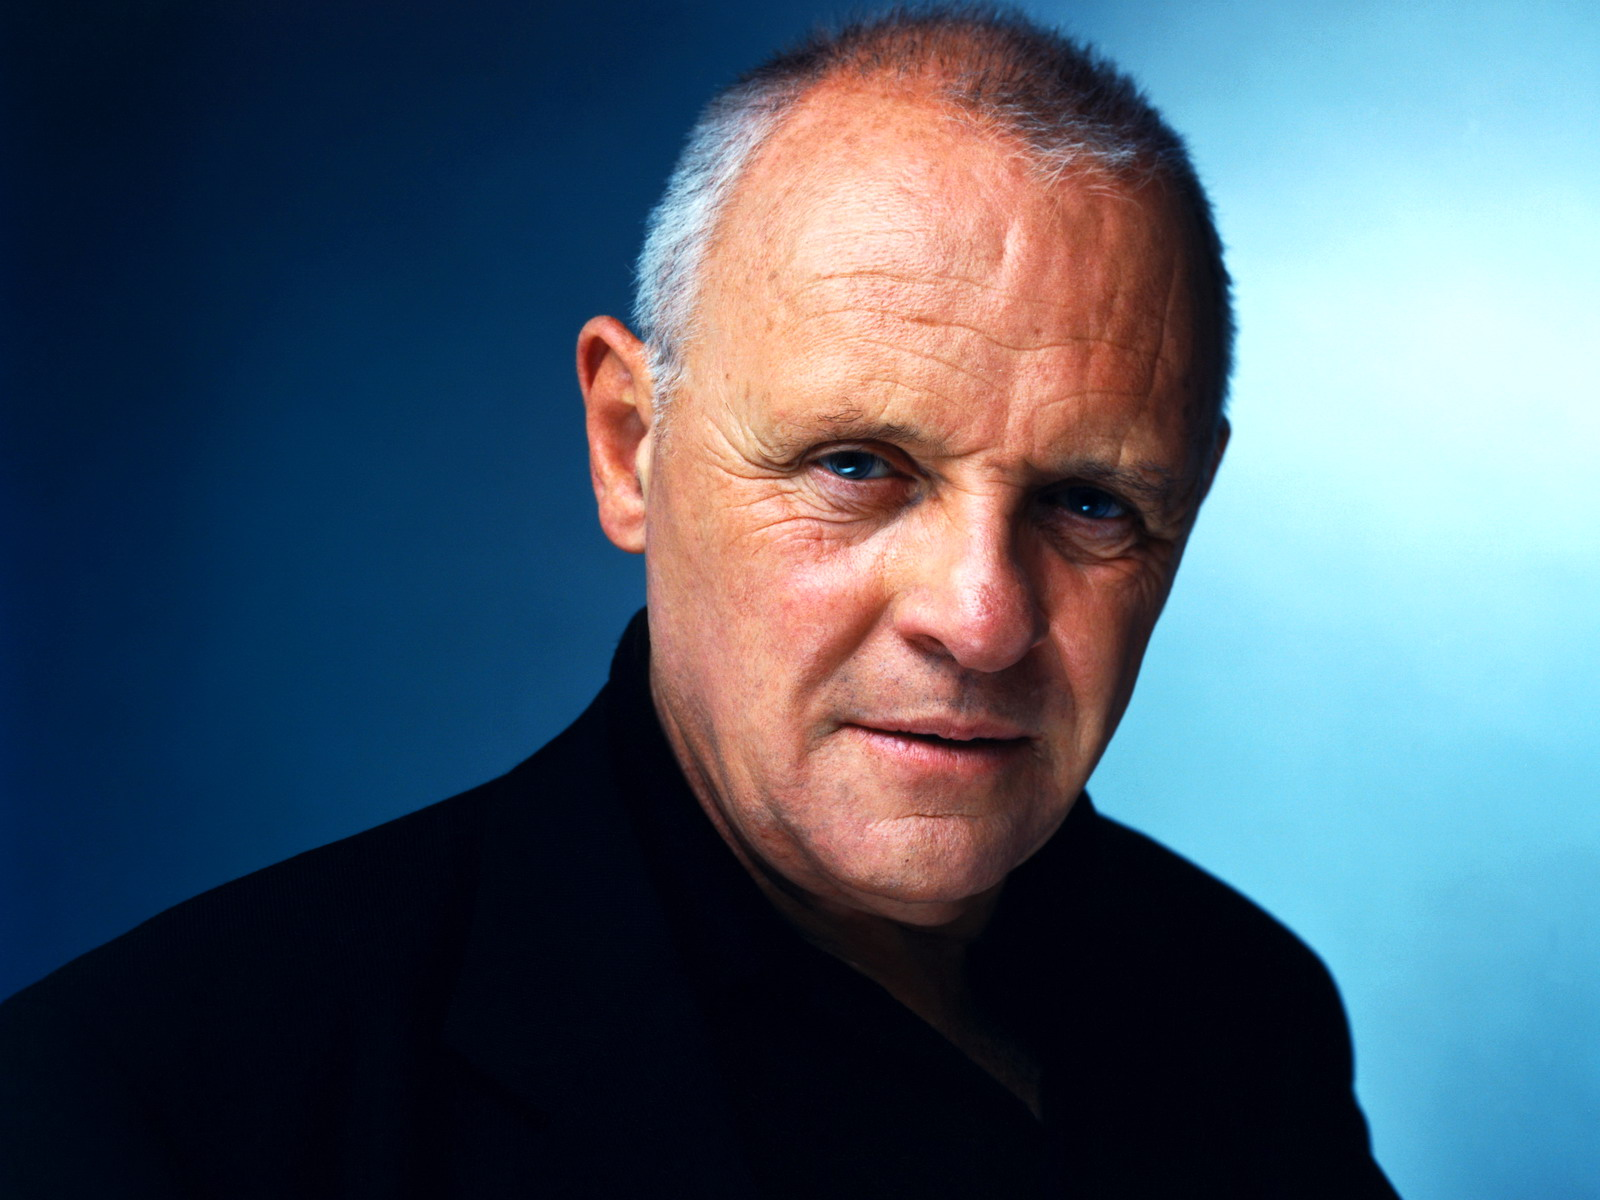 Anthony Hopkins Academy Award for Best Actor